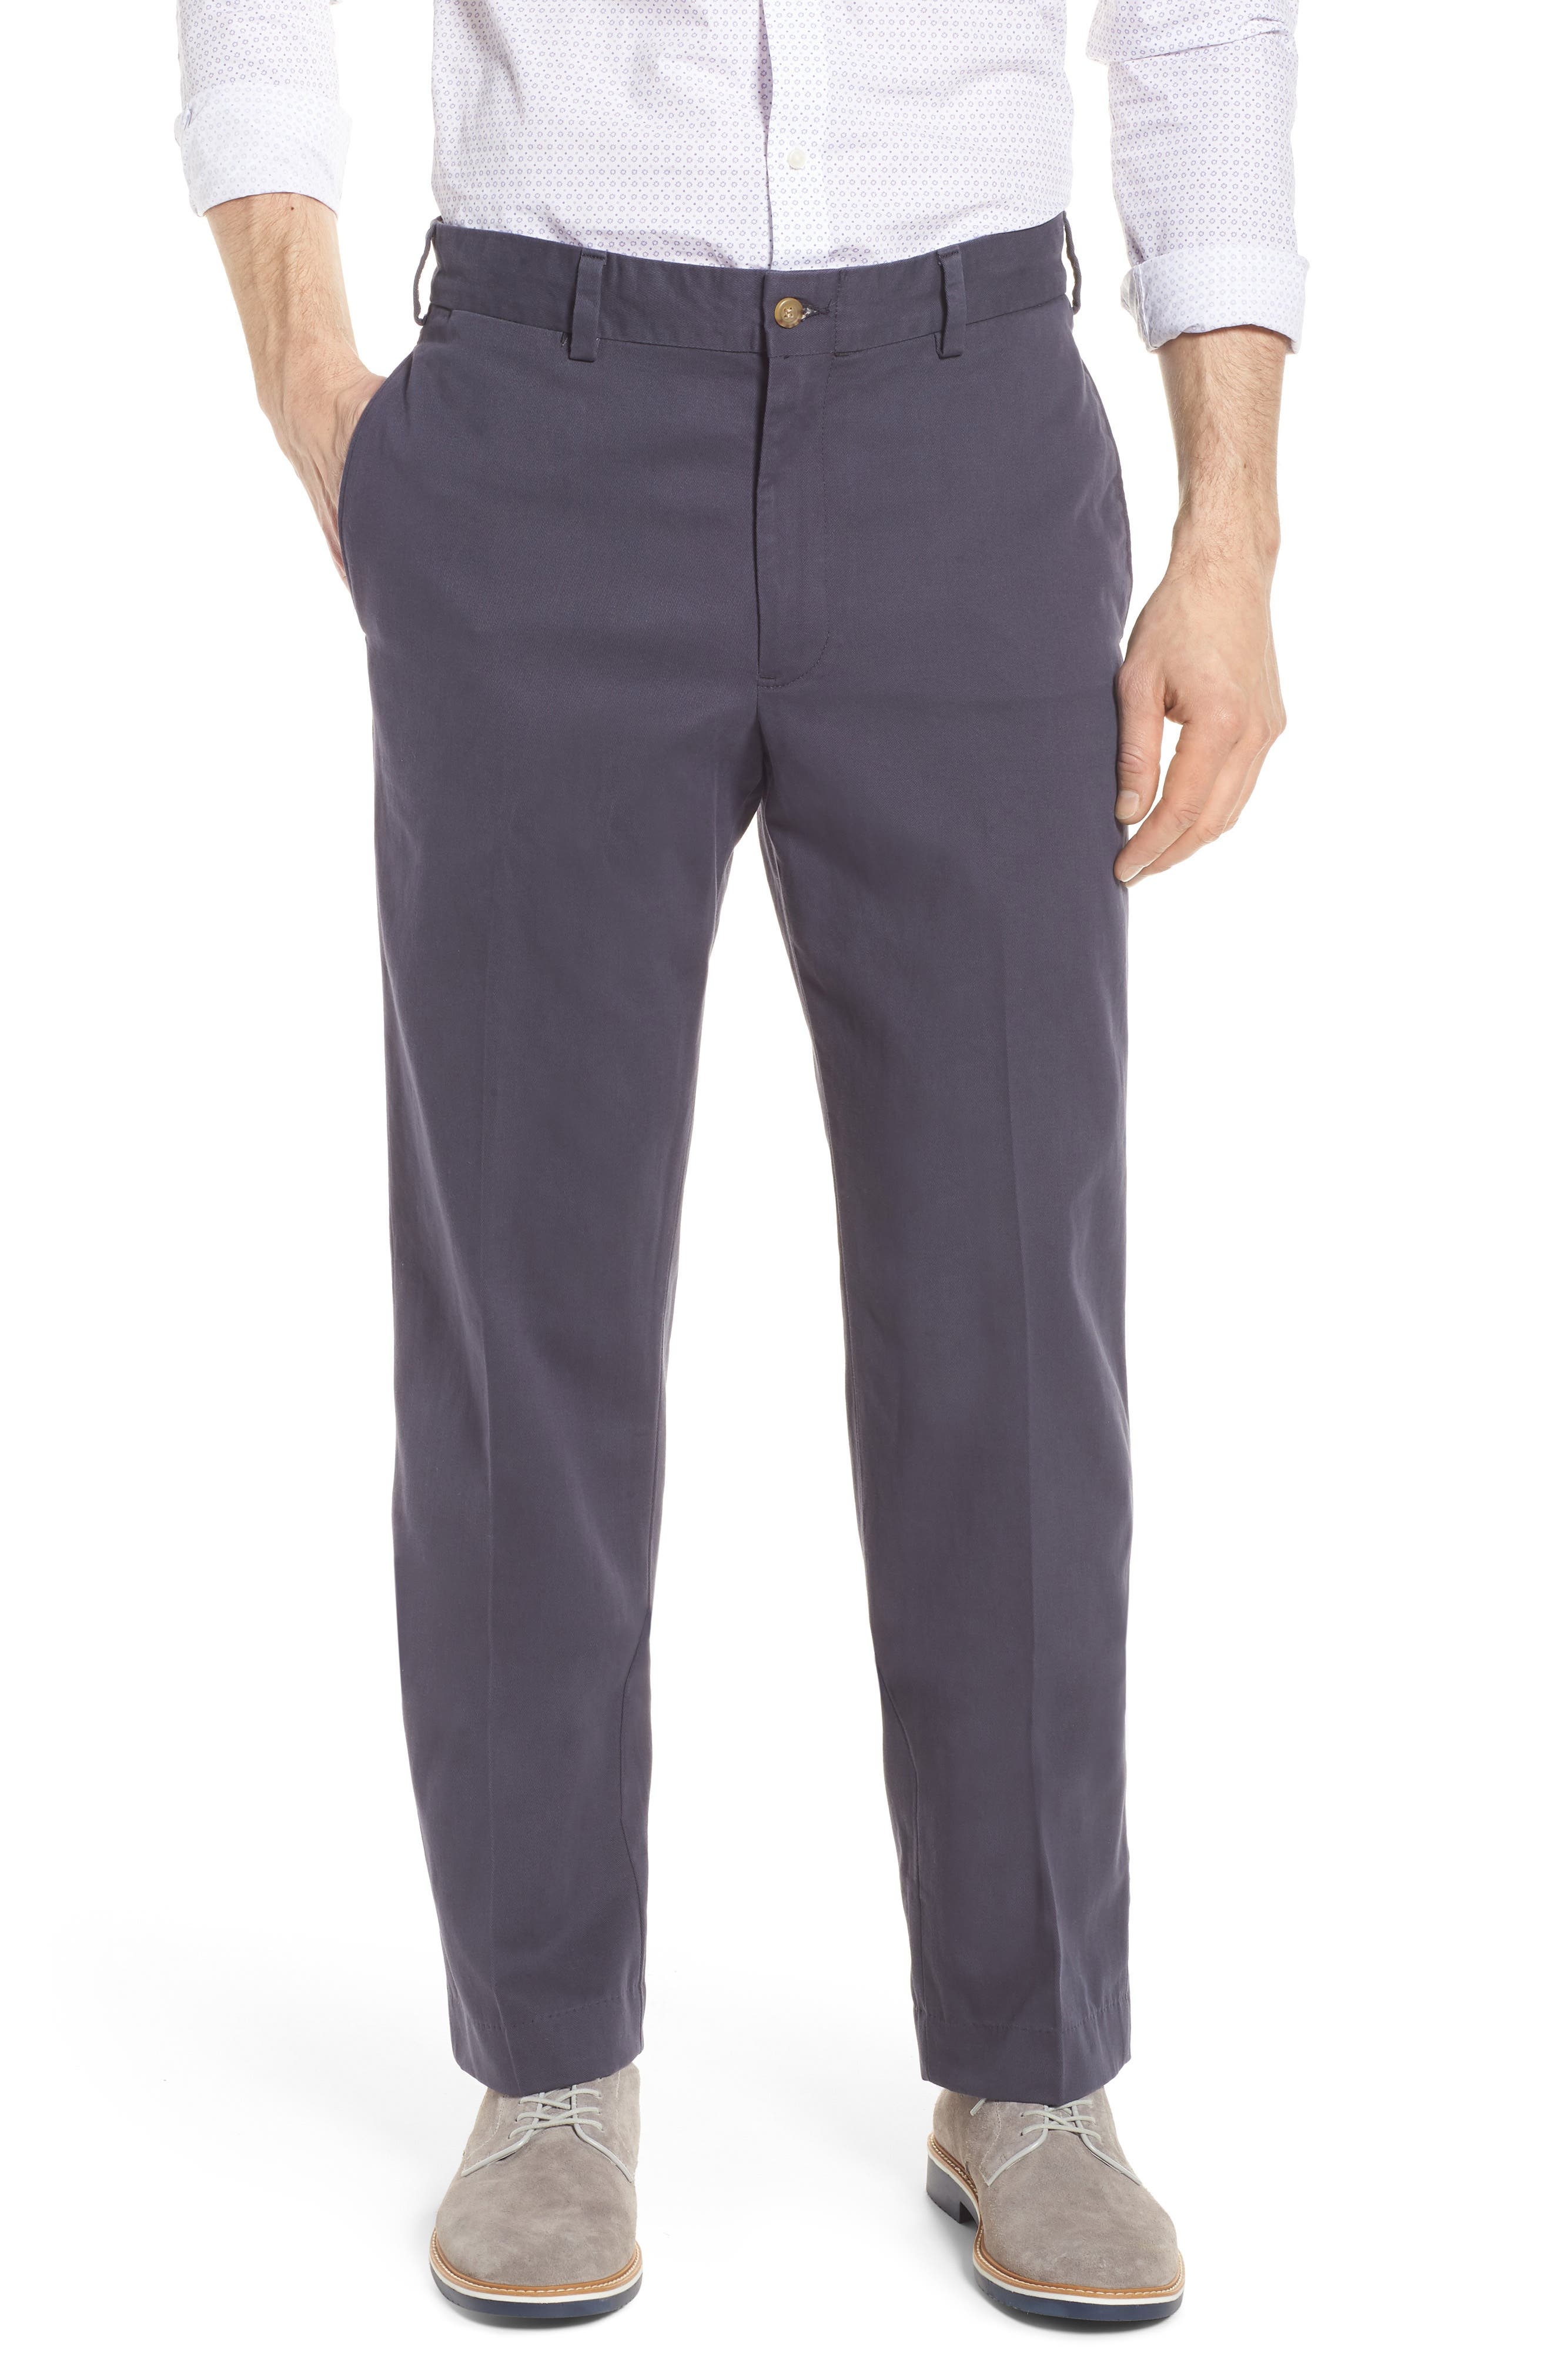 M2 Classic Fit Flat Front Vintage Twill Pants,                             Main thumbnail 1, color,                             Navy